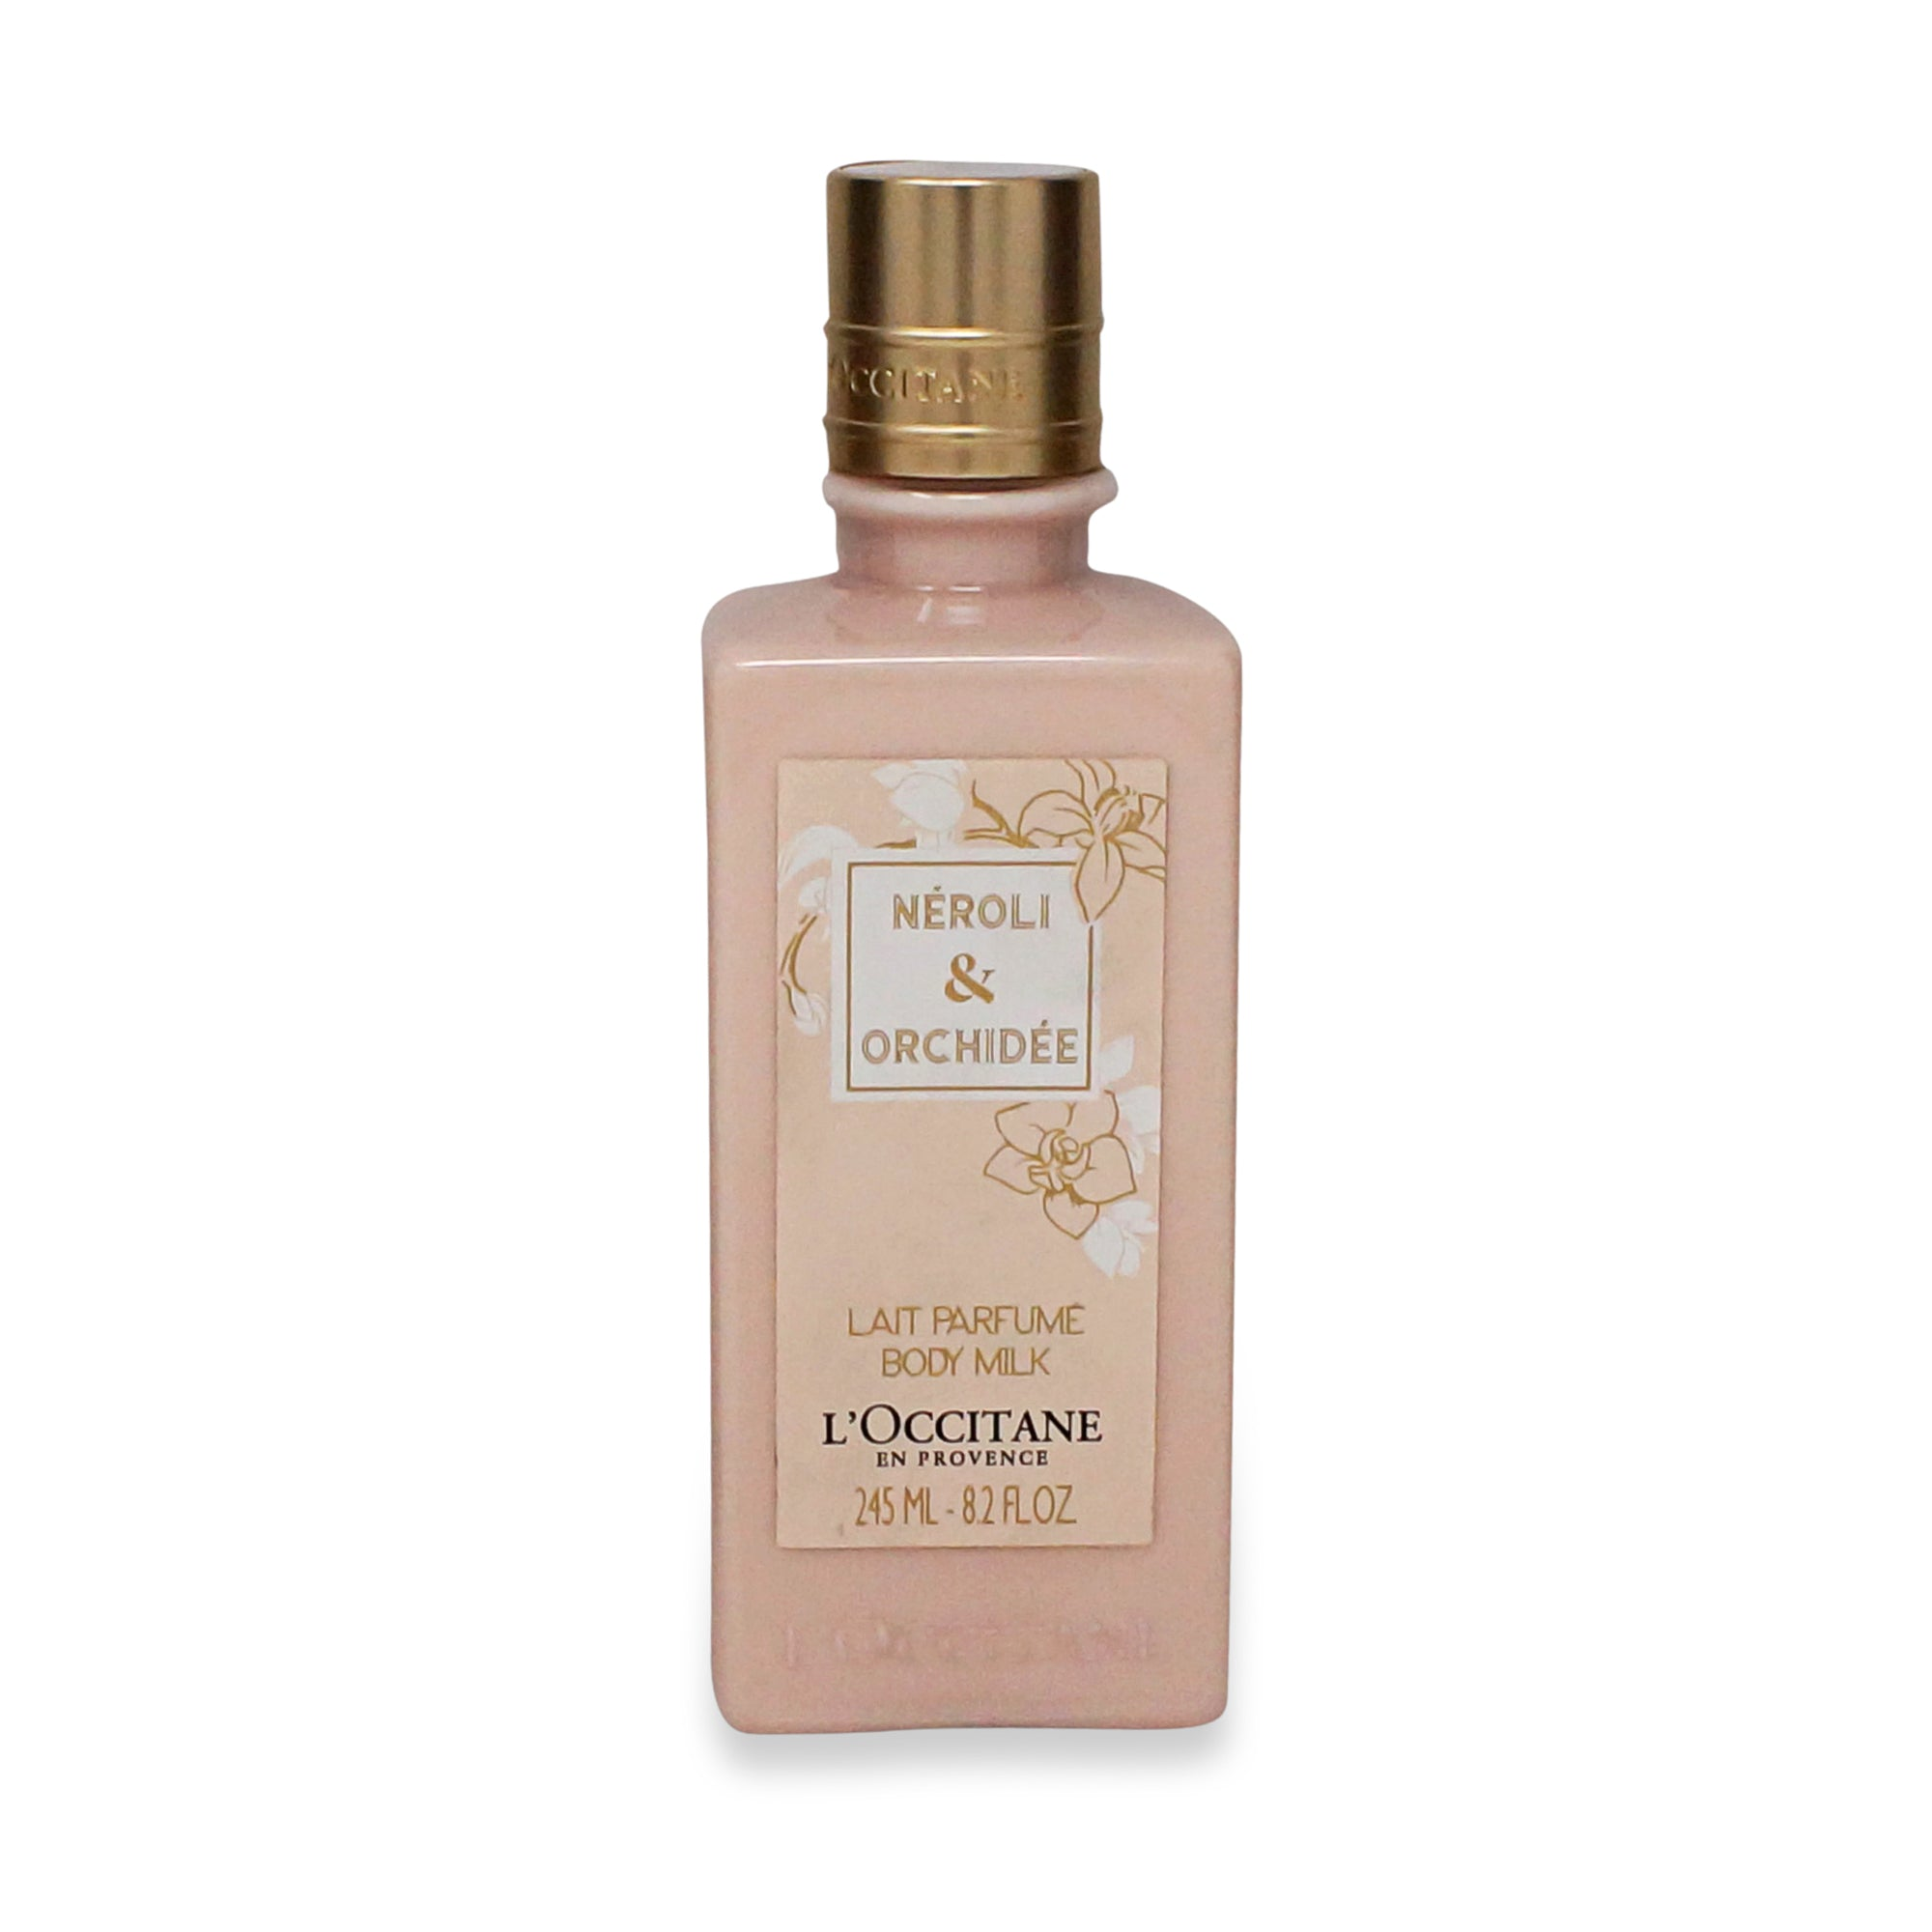 LOCCITANE ~ NEROLI & ORCHIDEE BODY MILK ~ 8.2 OZ